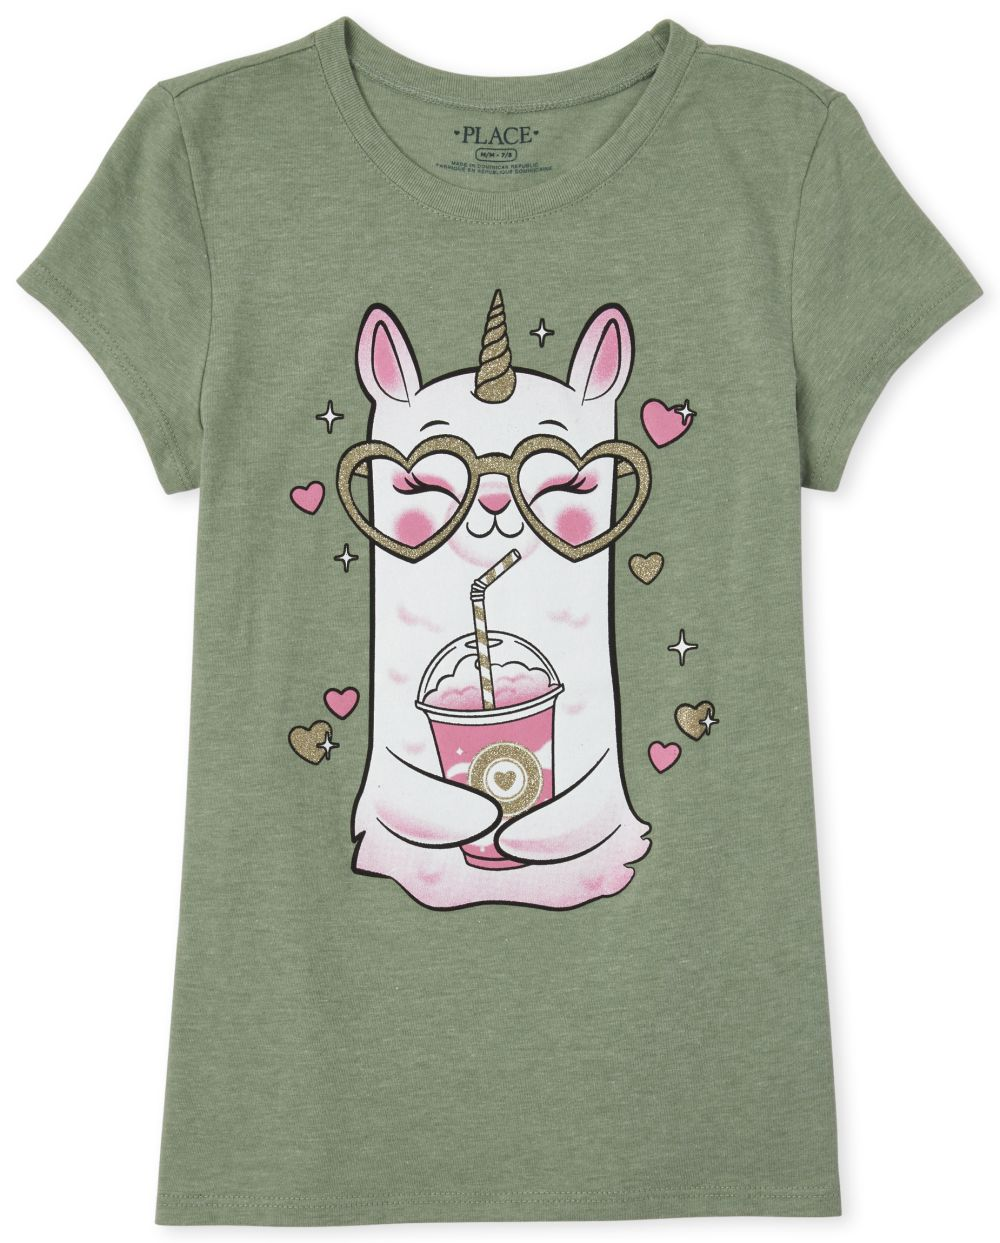 Girls Glitter Llamacorn Graphic Tee